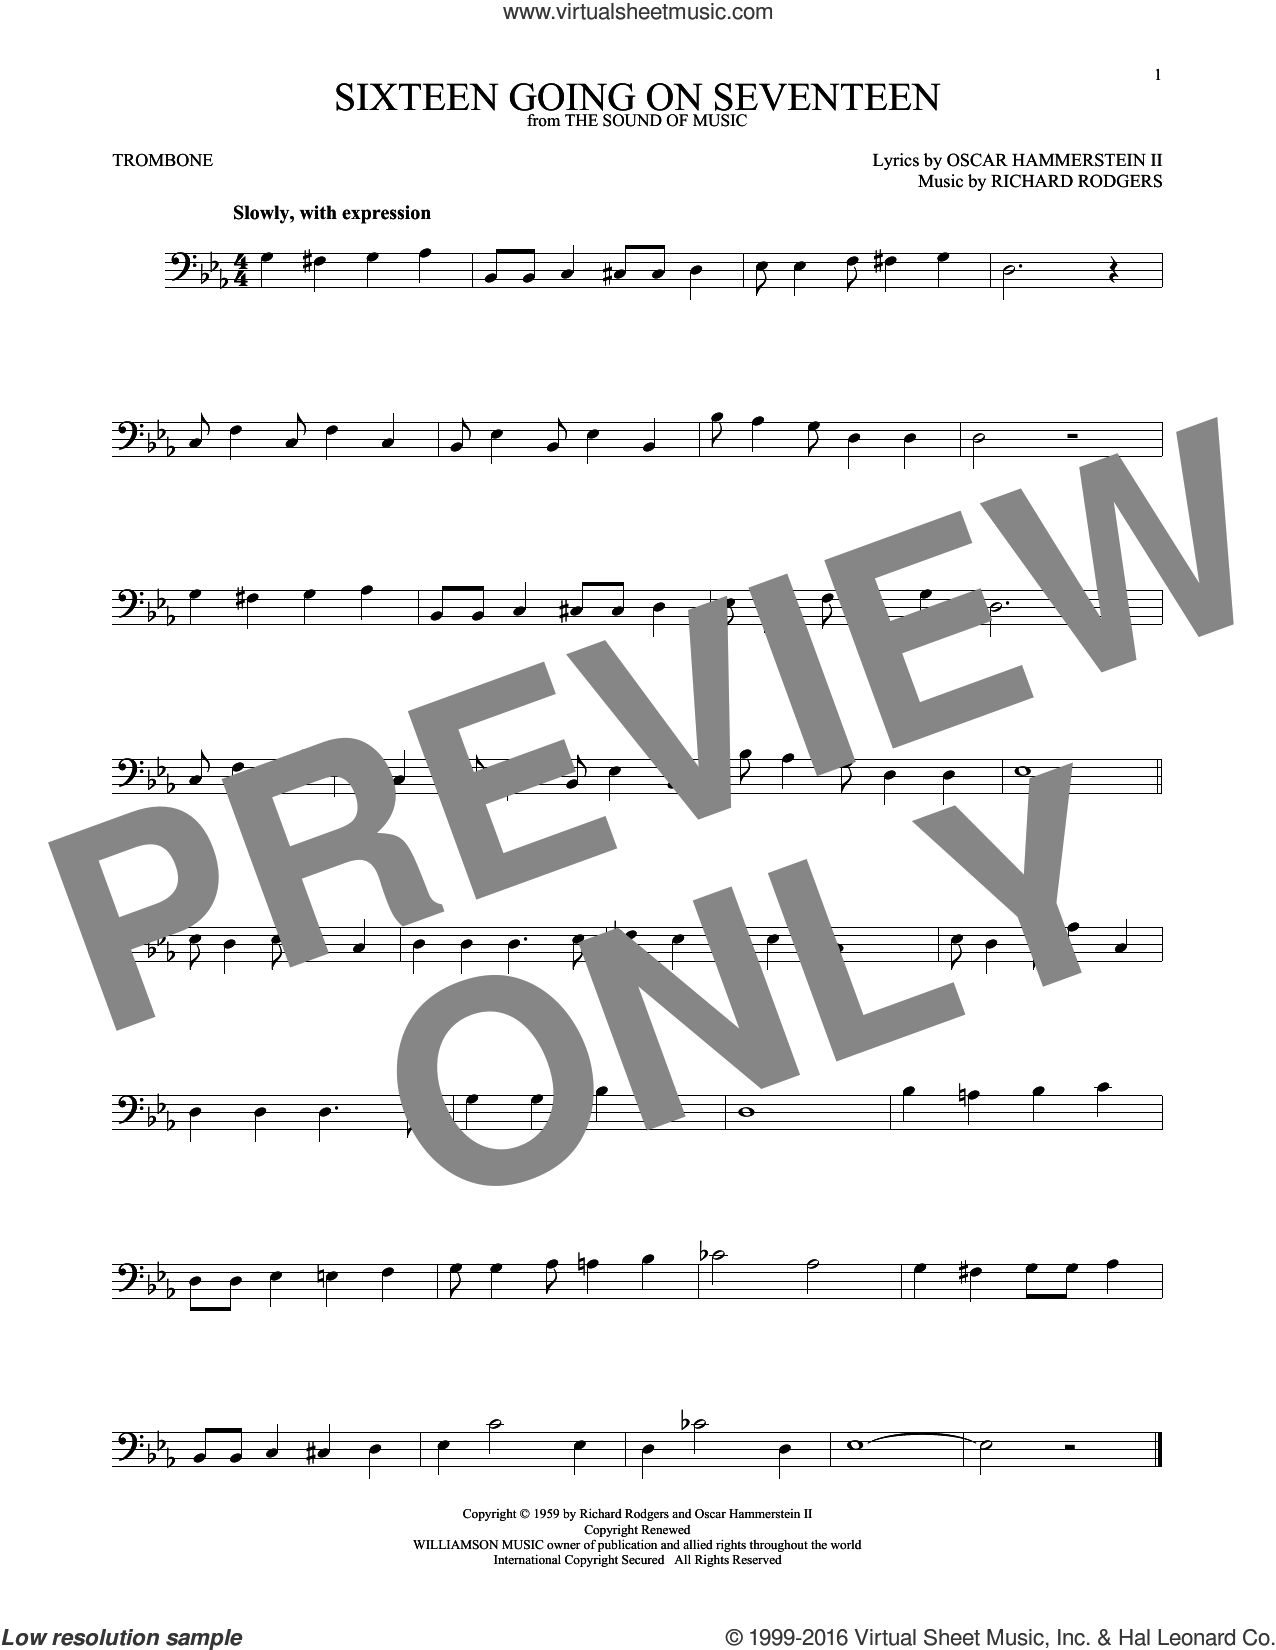 Sixteen Going On Seventeen sheet music for trombone solo by Rodgers & Hammerstein, Oscar II Hammerstein and Richard Rodgers, intermediate skill level